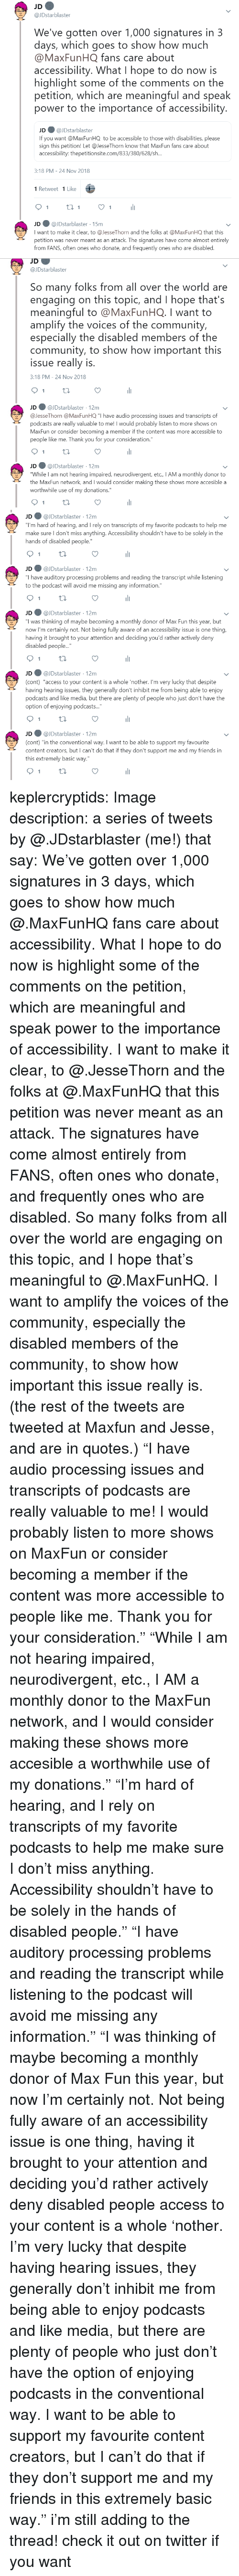 "deny: JDstarblaster  We've gotten over 1,000 signatures in 3  days, which goes to show how much  @MaxFunHQ fans care about  accessibility. What I hope to do now is  highlight some of the comments on the  petition, which are meaningful and speak  power to the importance of accessibility  JD ● @lDstarblaster  If you want @MaxFunHQ to be accessible to those with disabilities, please  sign this petition! Let @JesseThorn know that MaxFun fans care about  accessibility: thepetitionsite.com/833/380/628/s...  3:18 PM-24 Nov 2018  1 Retweet 1 Like  JD @JDstarblaster 15m  I want to make it clear, to @JesseThorn and the folks at @MaxFunHQ that this  petition was never meant as an attack. The signatures have come almost entirely  from FANS, often ones who donate, and frequently ones who are disabled.   JD  @JDstarblaster  So many folks from all over the world are  engaging on this topic, and I hope that's  meaningful to @MaxFunHQ. I want to  amplify the voices of the community,  especially the disabled members of the  community, to show how important this  issue really is  3:18 PM-24 Nov 2018  JD ● @JDstarblaster· 12m  @lesseThorn @MaxFun HQ ""I have audio processing issues and transcripts of  о,  dcasts are really valuable to me! I would probably listen to more shows on  MaxFun or consider becoming a member if the content was more accessible to  people like me. Thank you for your consideration.""  JD@JDstarblaster 12m  While I am not hearing impaired, neurodivergent, etc., IAM a monthly donor to  the MaxFun network, and I would consider making these shows more accesible a  worthwhile use of my donations.""   JD@JDstarblaster 12m  ou""I'm hard of hearing, and I rely on transcripts of my favorite podcasts to help me  make sure I don't miss anything. Accessibility shouldn't have to be solely in the  hands of disabled people  JD@JDstarblaster 12m  have auditory processing problems and reading the transcript while listening  to the podcast will avoid me missing any information.""  JD@JDstarblaster 12m  was thinking of maybe becoming a monthly donor of Max Fun this year, but  now I'm certainly not. Not being fully aware of an accessibility issue is one thing  having it brought to your attention and deciding you'd rather actively deny  disabled people...""  JD@JDstarblaster 12m  (cont) ""access to your content is a whole 'nother. I'm very lucky that despite  having hearing issues, they generally don't inhibit me from being able to enjoy  podcasts and like media, but there are plenty of people who just don't have the  option of enjoying podcasts...  JD@JDstarblaster 12m  cont) ""in the conventional way. I want to be able to support my favourite  content creators, but I can't do that if they don't support me and my friends in  this extremely basic way."" keplercryptids: Image description: a series of tweets by @.JDstarblaster (me!) that say: We've gotten over 1,000 signatures in 3 days, which goes to show how much @.MaxFunHQ fans care about accessibility. What I hope to do now is highlight some of the comments on the petition, which are meaningful and speak power to the importance of accessibility. I want to make it clear, to @.JesseThorn and the folks at @.MaxFunHQ that this petition was never meant as an attack. The signatures have come almost entirely from FANS, often ones who donate, and frequently ones who are disabled. So many folks from all over the world are engaging on this topic, and I hope that's meaningful to @.MaxFunHQ. I want to amplify the voices of the community, especially the disabled members of the community, to show how important this issue really is. (the rest of the tweets are tweeted at Maxfun and Jesse, and are in quotes.) ""I have audio processing issues and transcripts of podcasts are really valuable to me! I would probably listen to more shows on MaxFun or consider becoming a member if the content was more accessible to people like me. Thank you for your consideration."" ""While I am not hearing impaired, neurodivergent, etc., I AM a monthly donor to the MaxFun network, and I would consider making these shows more accesible a worthwhile use of my donations."" ""I'm hard of hearing, and I rely on transcripts of my favorite podcasts to help me make sure I don't miss anything. Accessibility shouldn't have to be solely in the hands of disabled people."" ""I have auditory processing problems and reading the transcript while listening to the podcast will avoid me missing any information."" ""I was thinking of maybe becoming a monthly donor of Max Fun this year, but now I'm certainly not. Not being fully aware of an accessibility issue is one thing, having it brought to your attention and deciding you'd rather actively deny disabled people access to your content is a whole 'nother. I'm very lucky that despite having hearing issues, they generally don't inhibit me from being able to enjoy podcasts and like media, but there are plenty of people who just don't have the option of enjoying podcasts in the conventional way. I want to be able to support my favourite content creators, but I can't do that if they don't support me and my friends in this extremely basic way."" i'm still adding to the thread! check it out on twitter if you want"